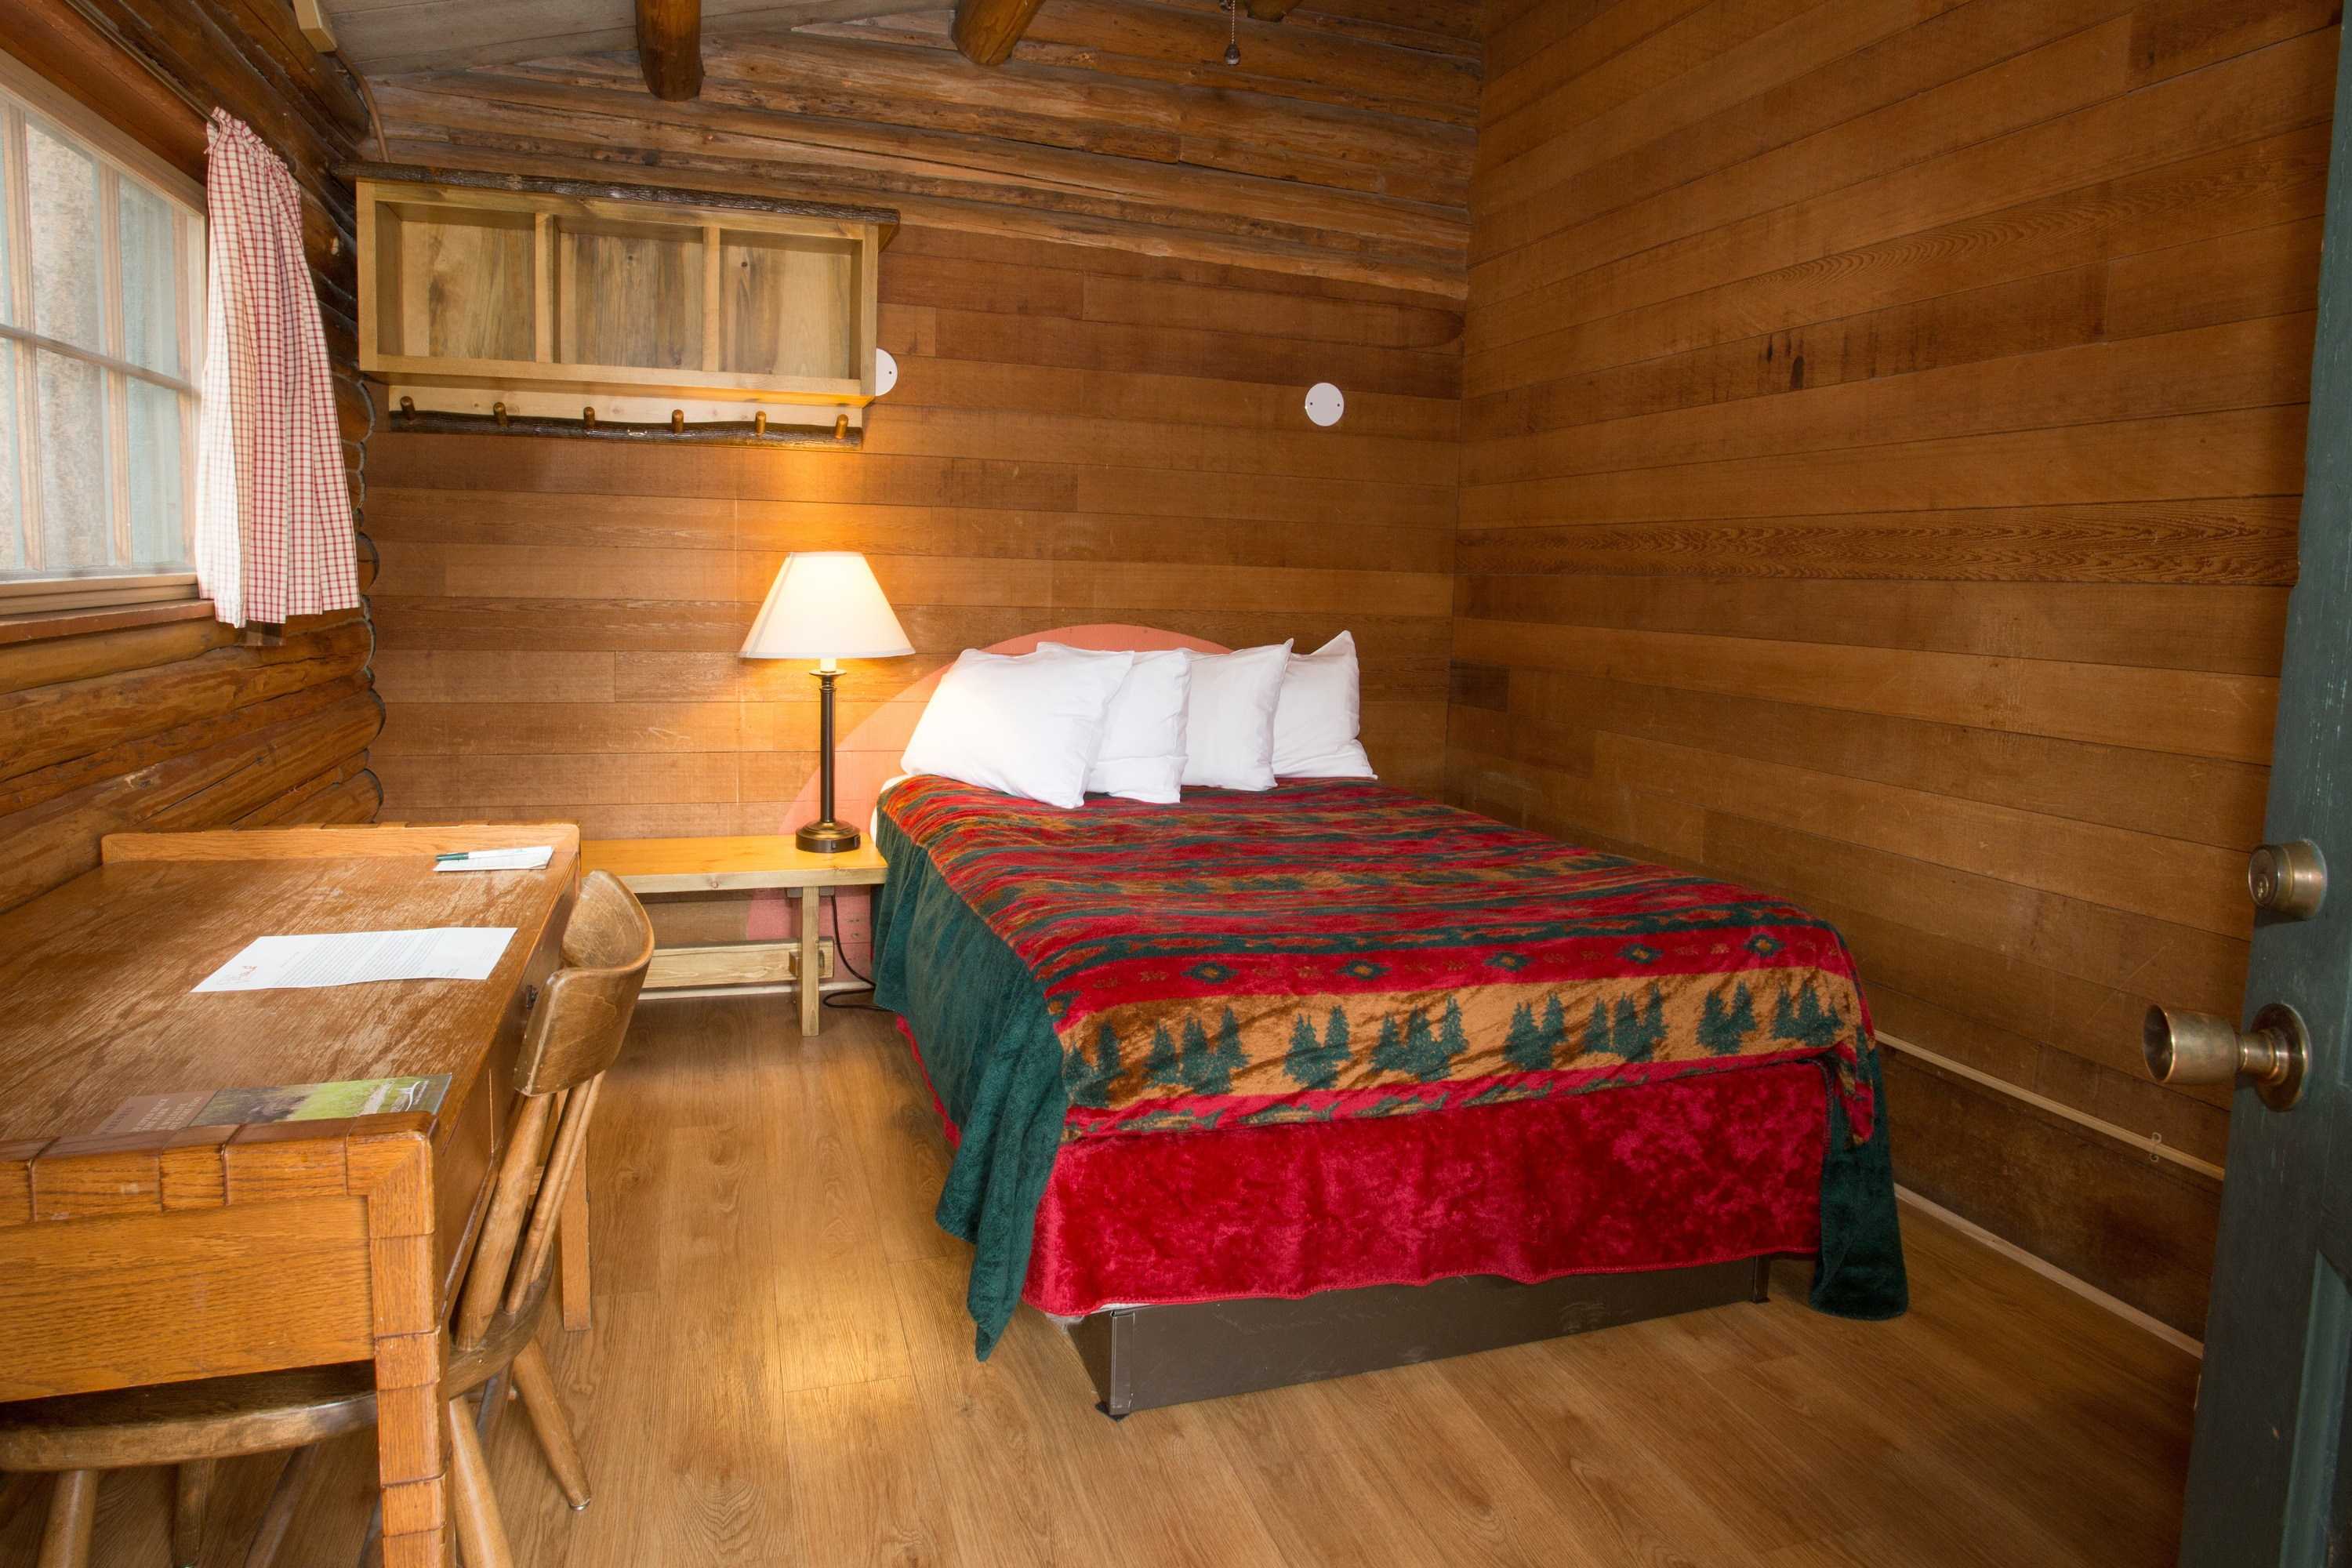 One Room Cabin   One Double Bed Shared Bathroom U0026 Double Bed, Sleeps 1 2 $